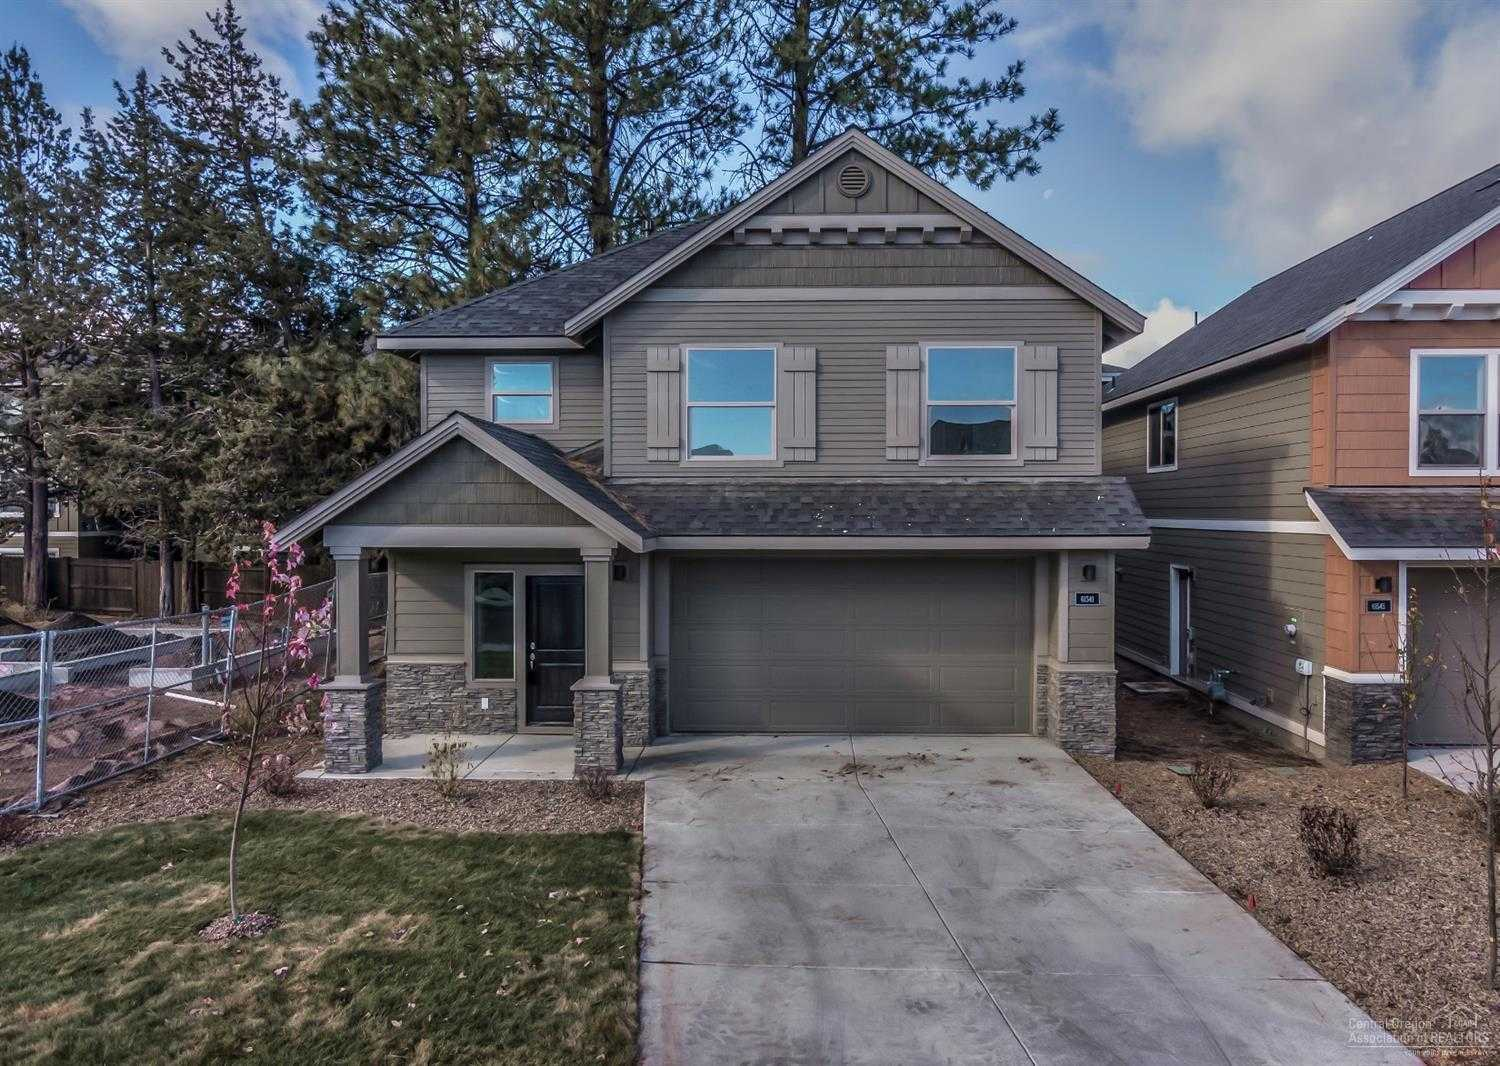 $419,990 - 4Br/3Ba -  for Sale in Bend